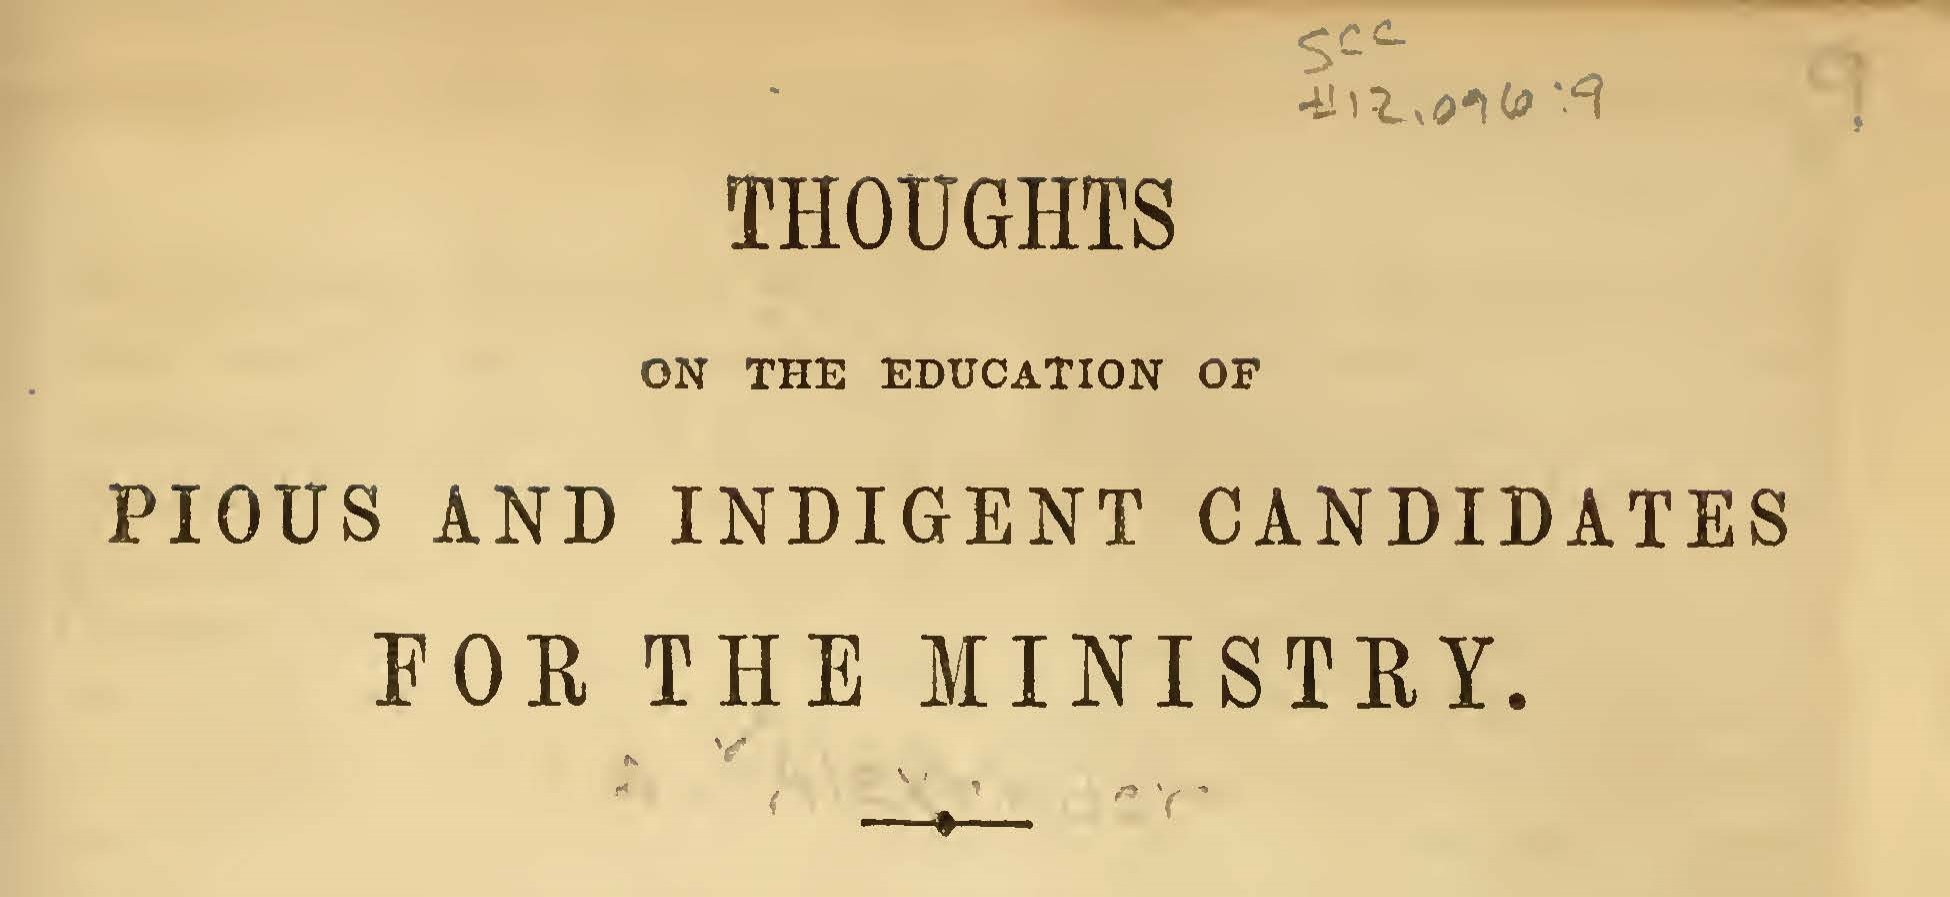 Alexander, Archibald, Thoughts on the Education of Pious and Indigent Candidates of the Ministry Title Page.jpg